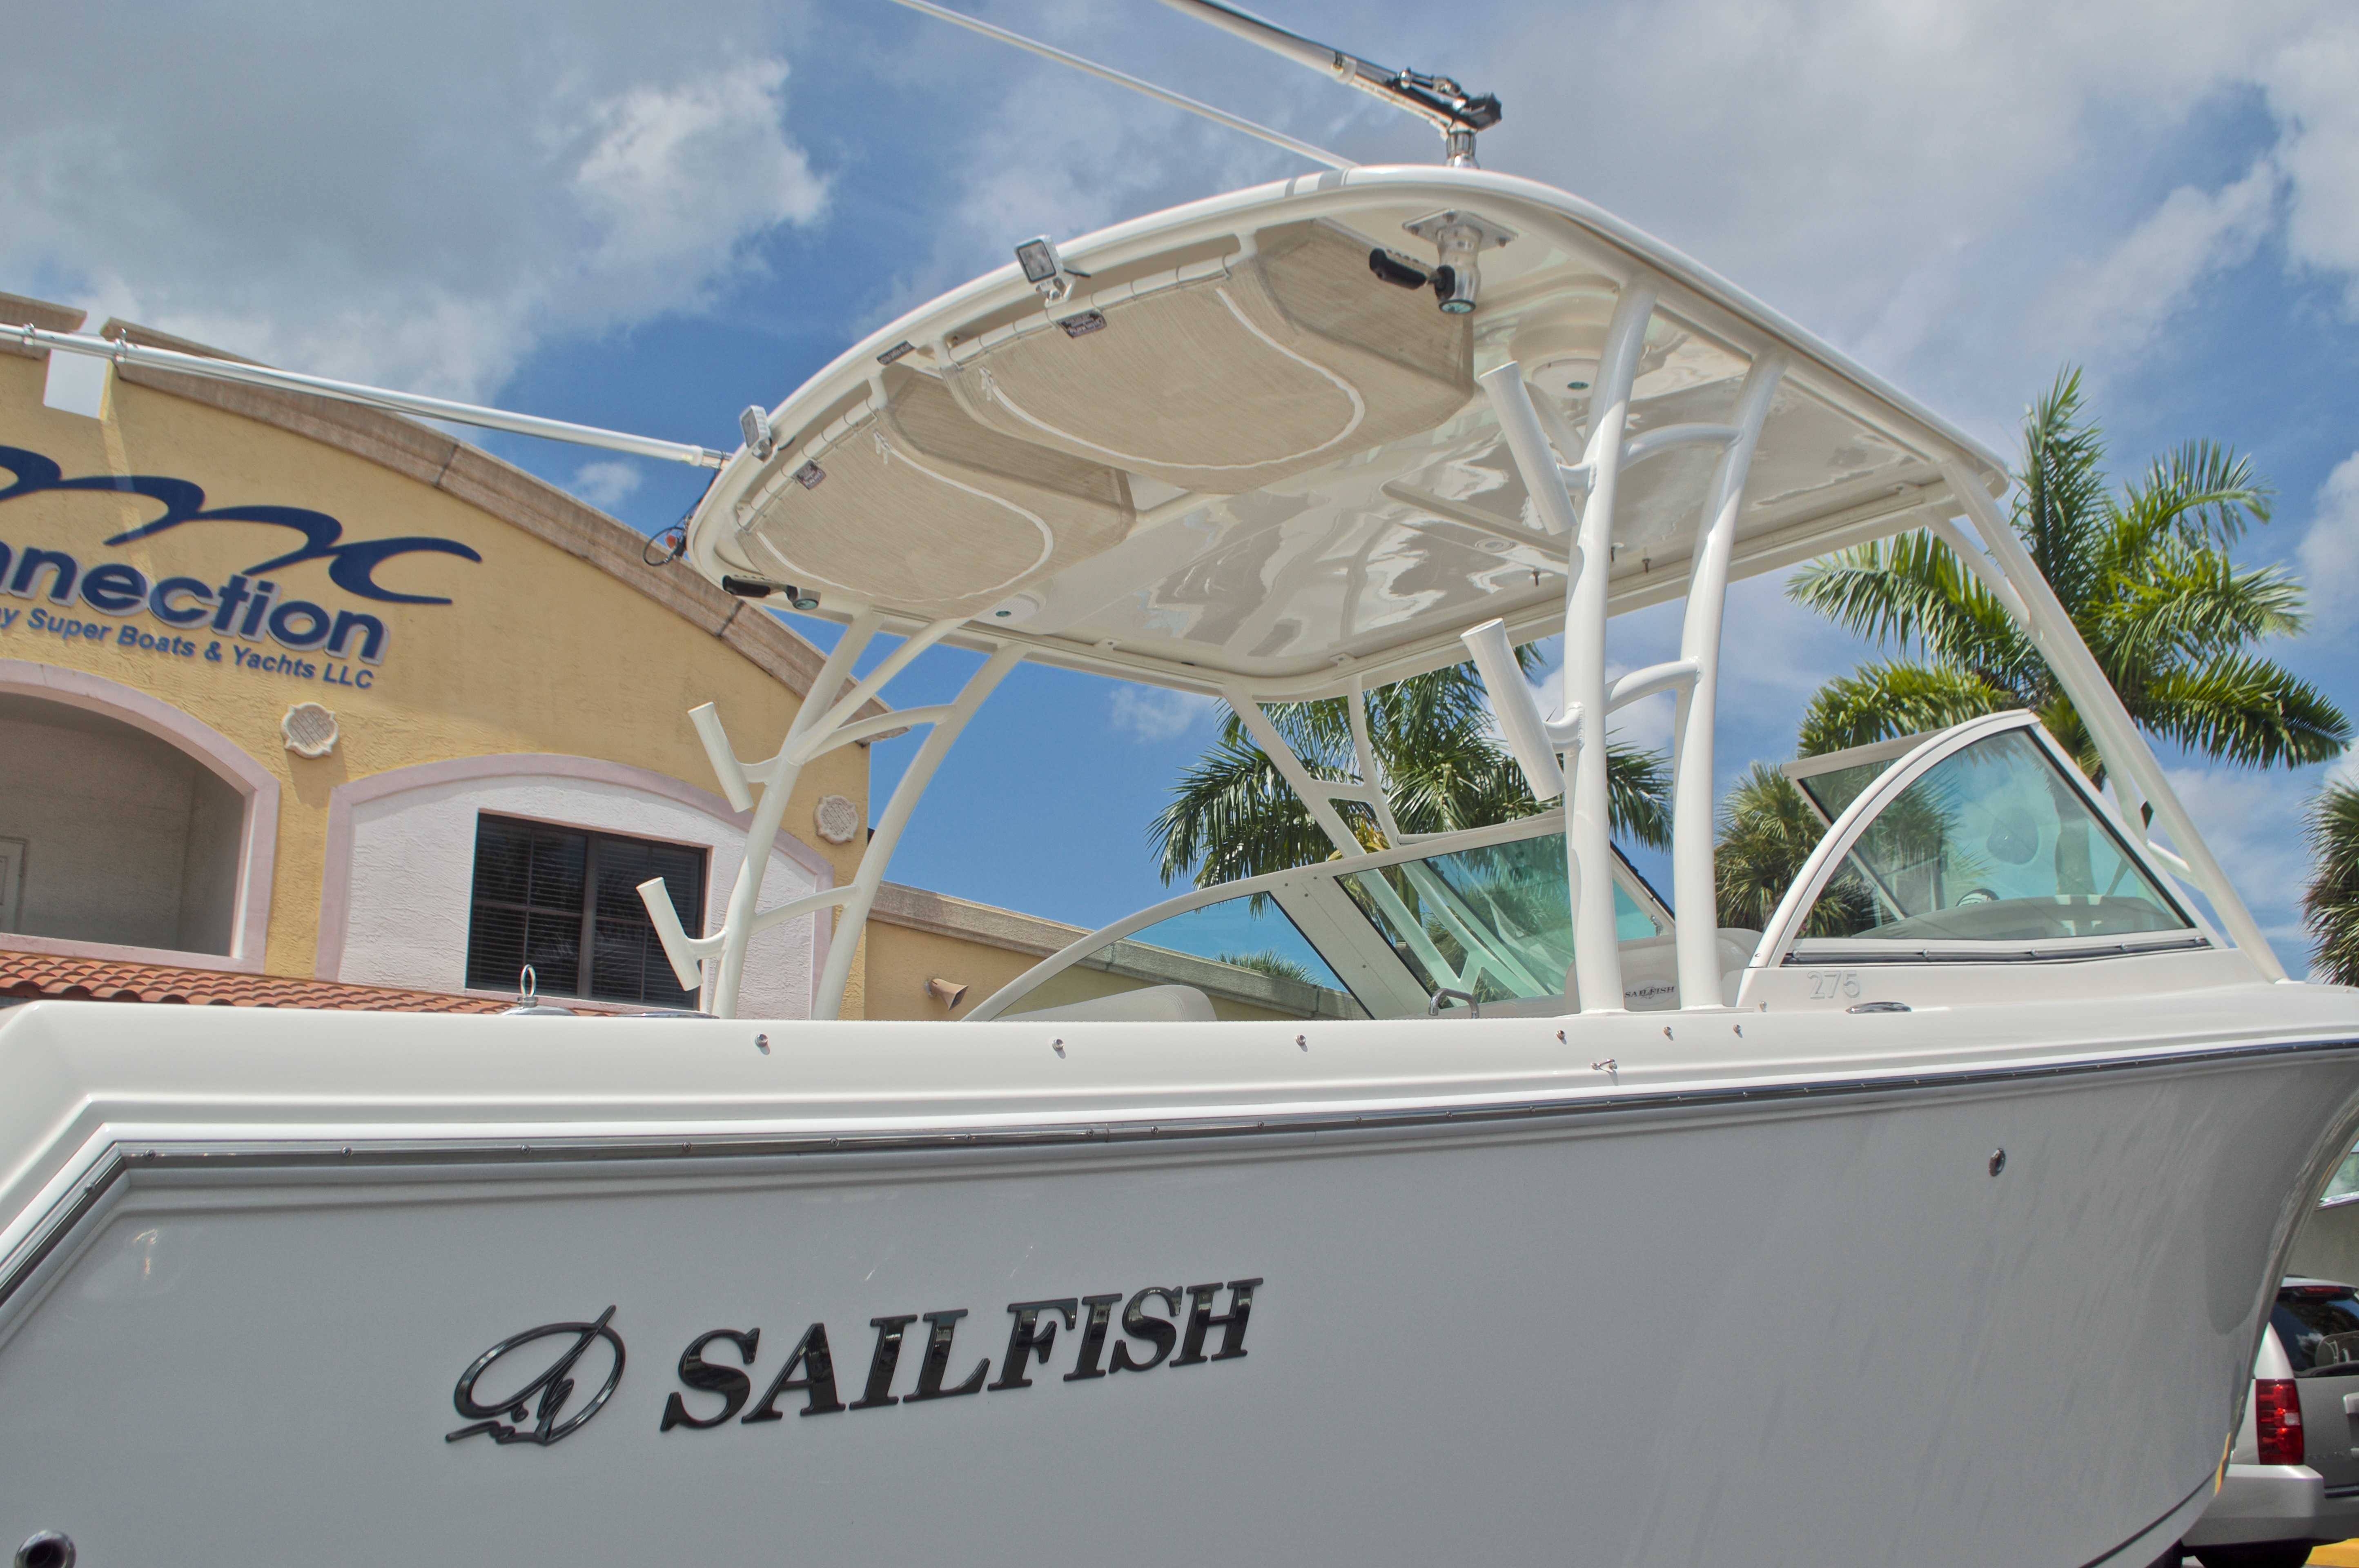 Thumbnail 8 for Used 2016 Sailfish 275 Dual Console boat for sale in West Palm Beach, FL